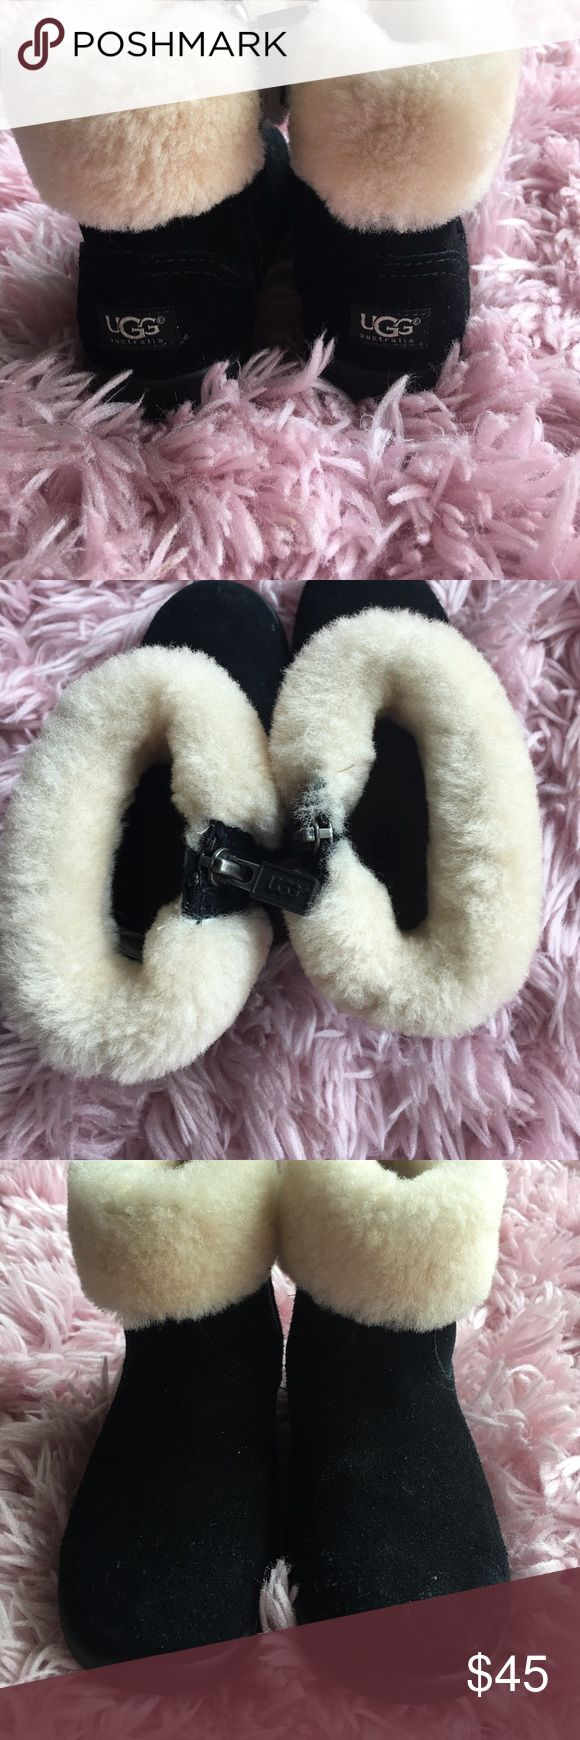 Kids UGG Boots Authentic 8.5 toddler girls shoes AUTHENTIC toddler girls UGG boots size 8.5 black with fur. Great used condition UGG Shoes Boots